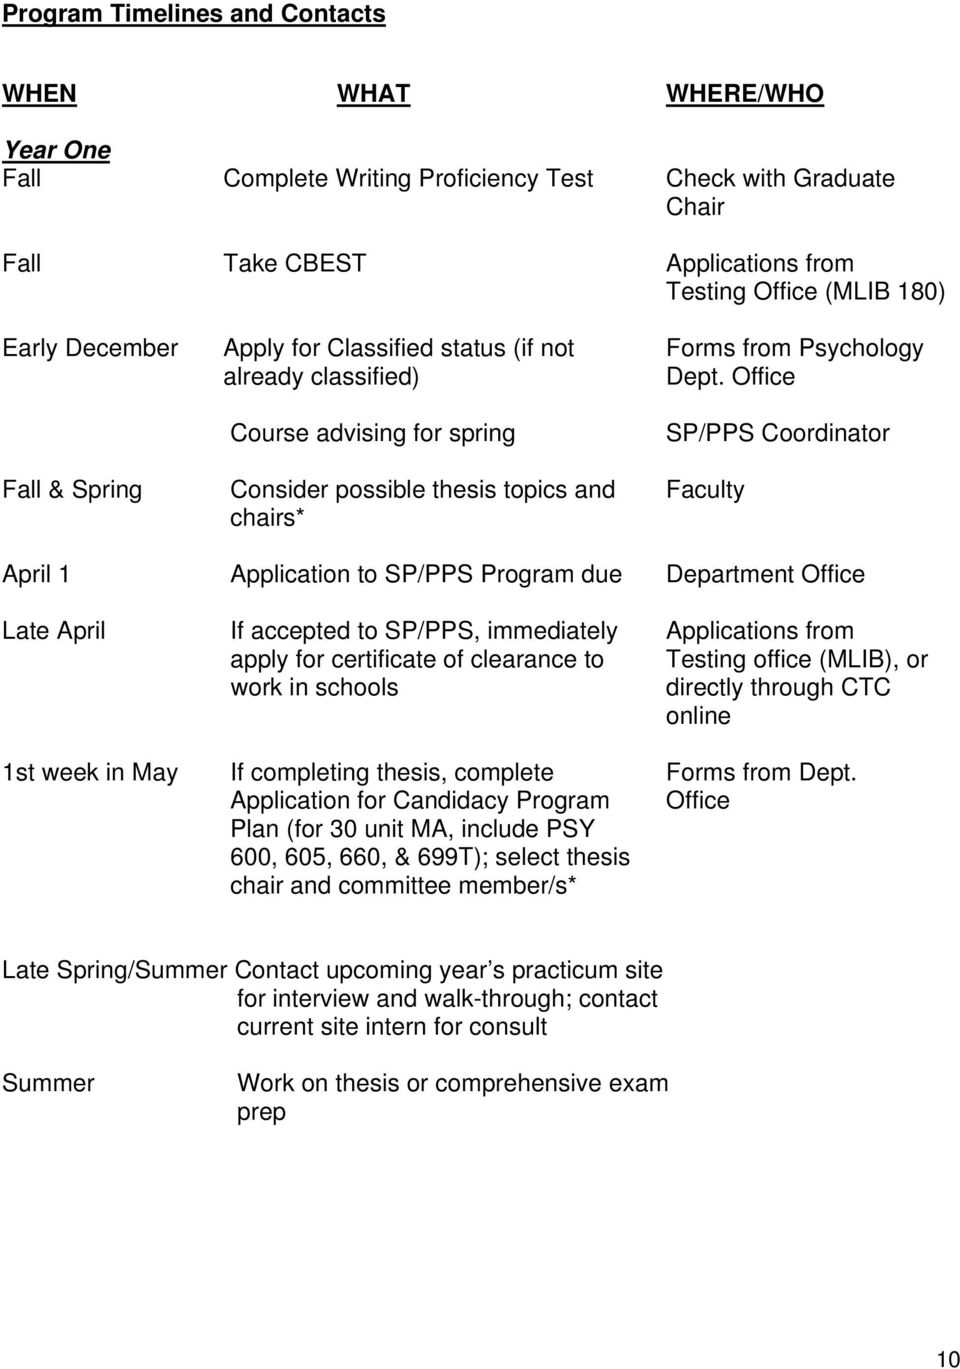 Office Course advising for spring SP/PPS Coordinator Fall & Spring Consider possible thesis topics and Faculty chairs* April 1 Application to SP/PPS Program due Department Office Late April If